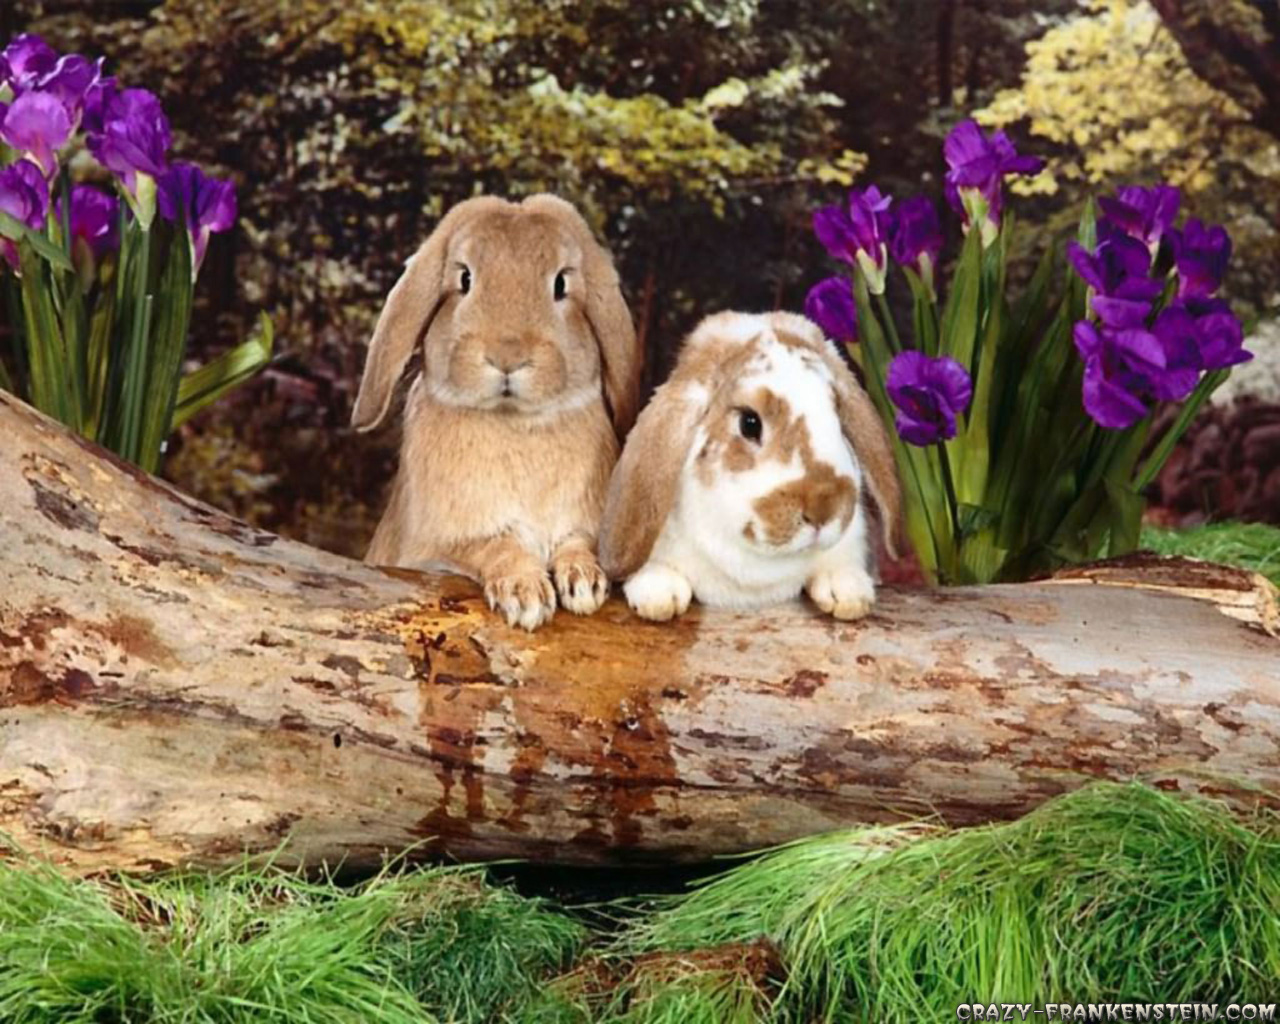 Happy Easter Rabbit at Forest wallpaper